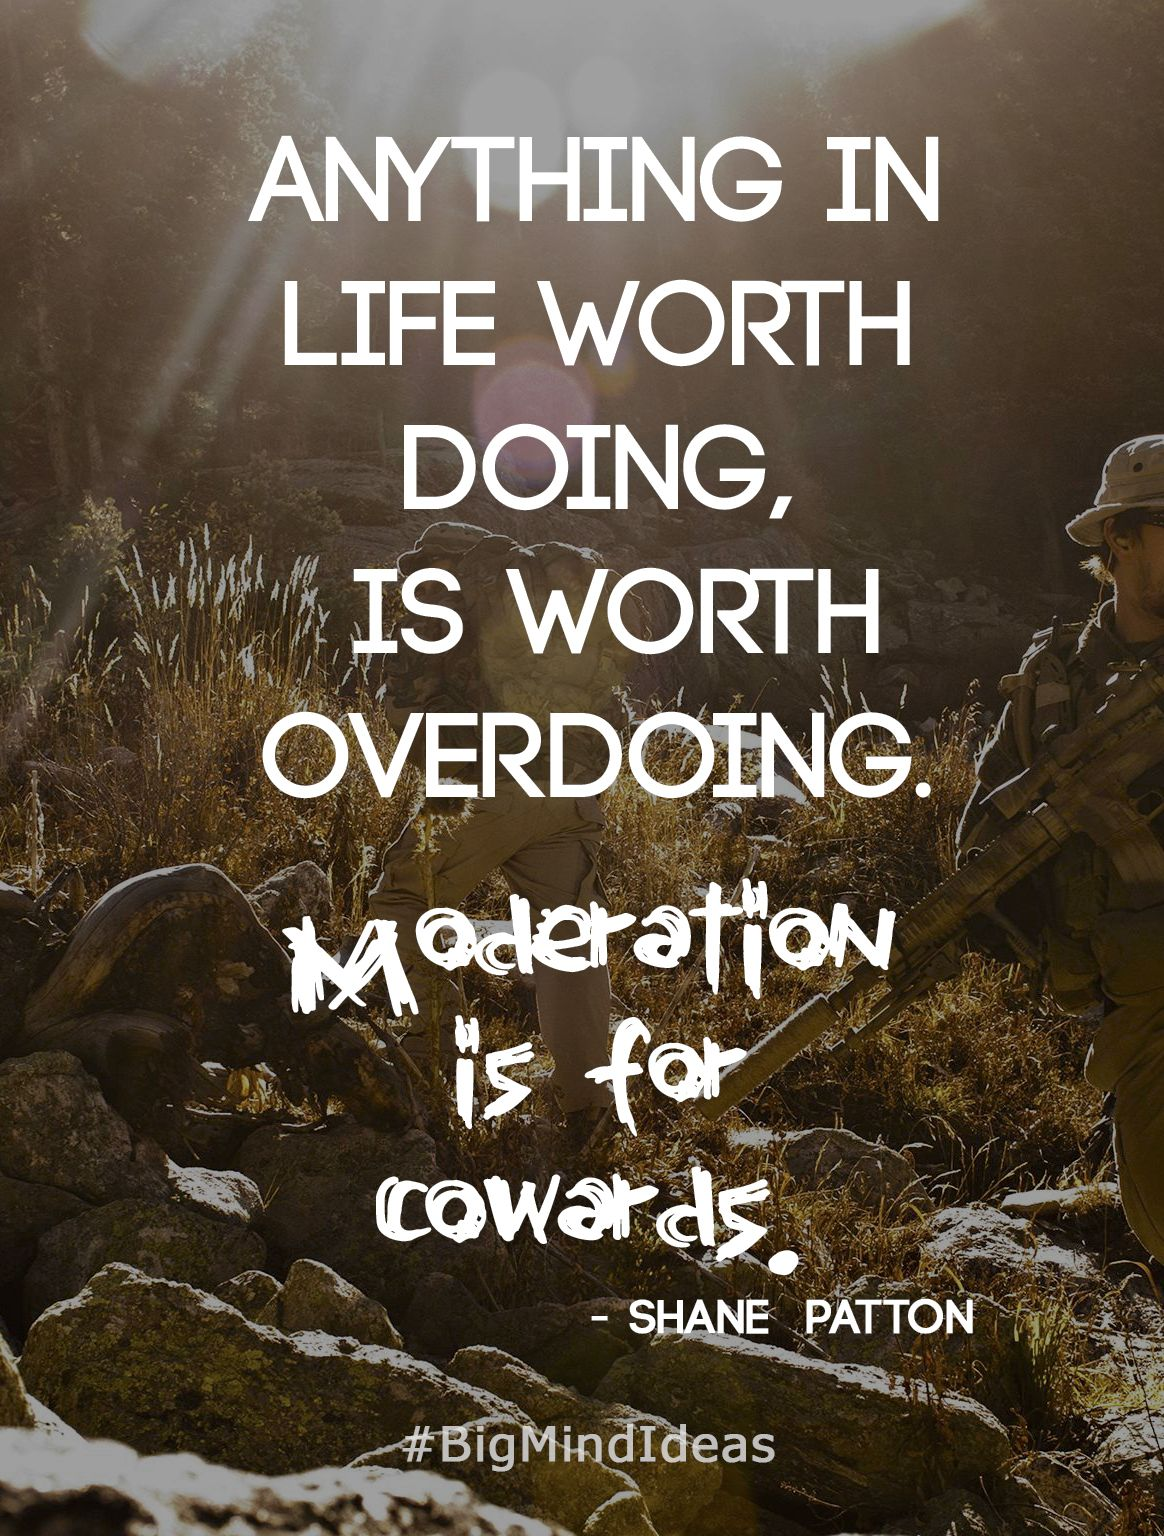 """""""Anything in life worth doing, is worth overdoing ..."""